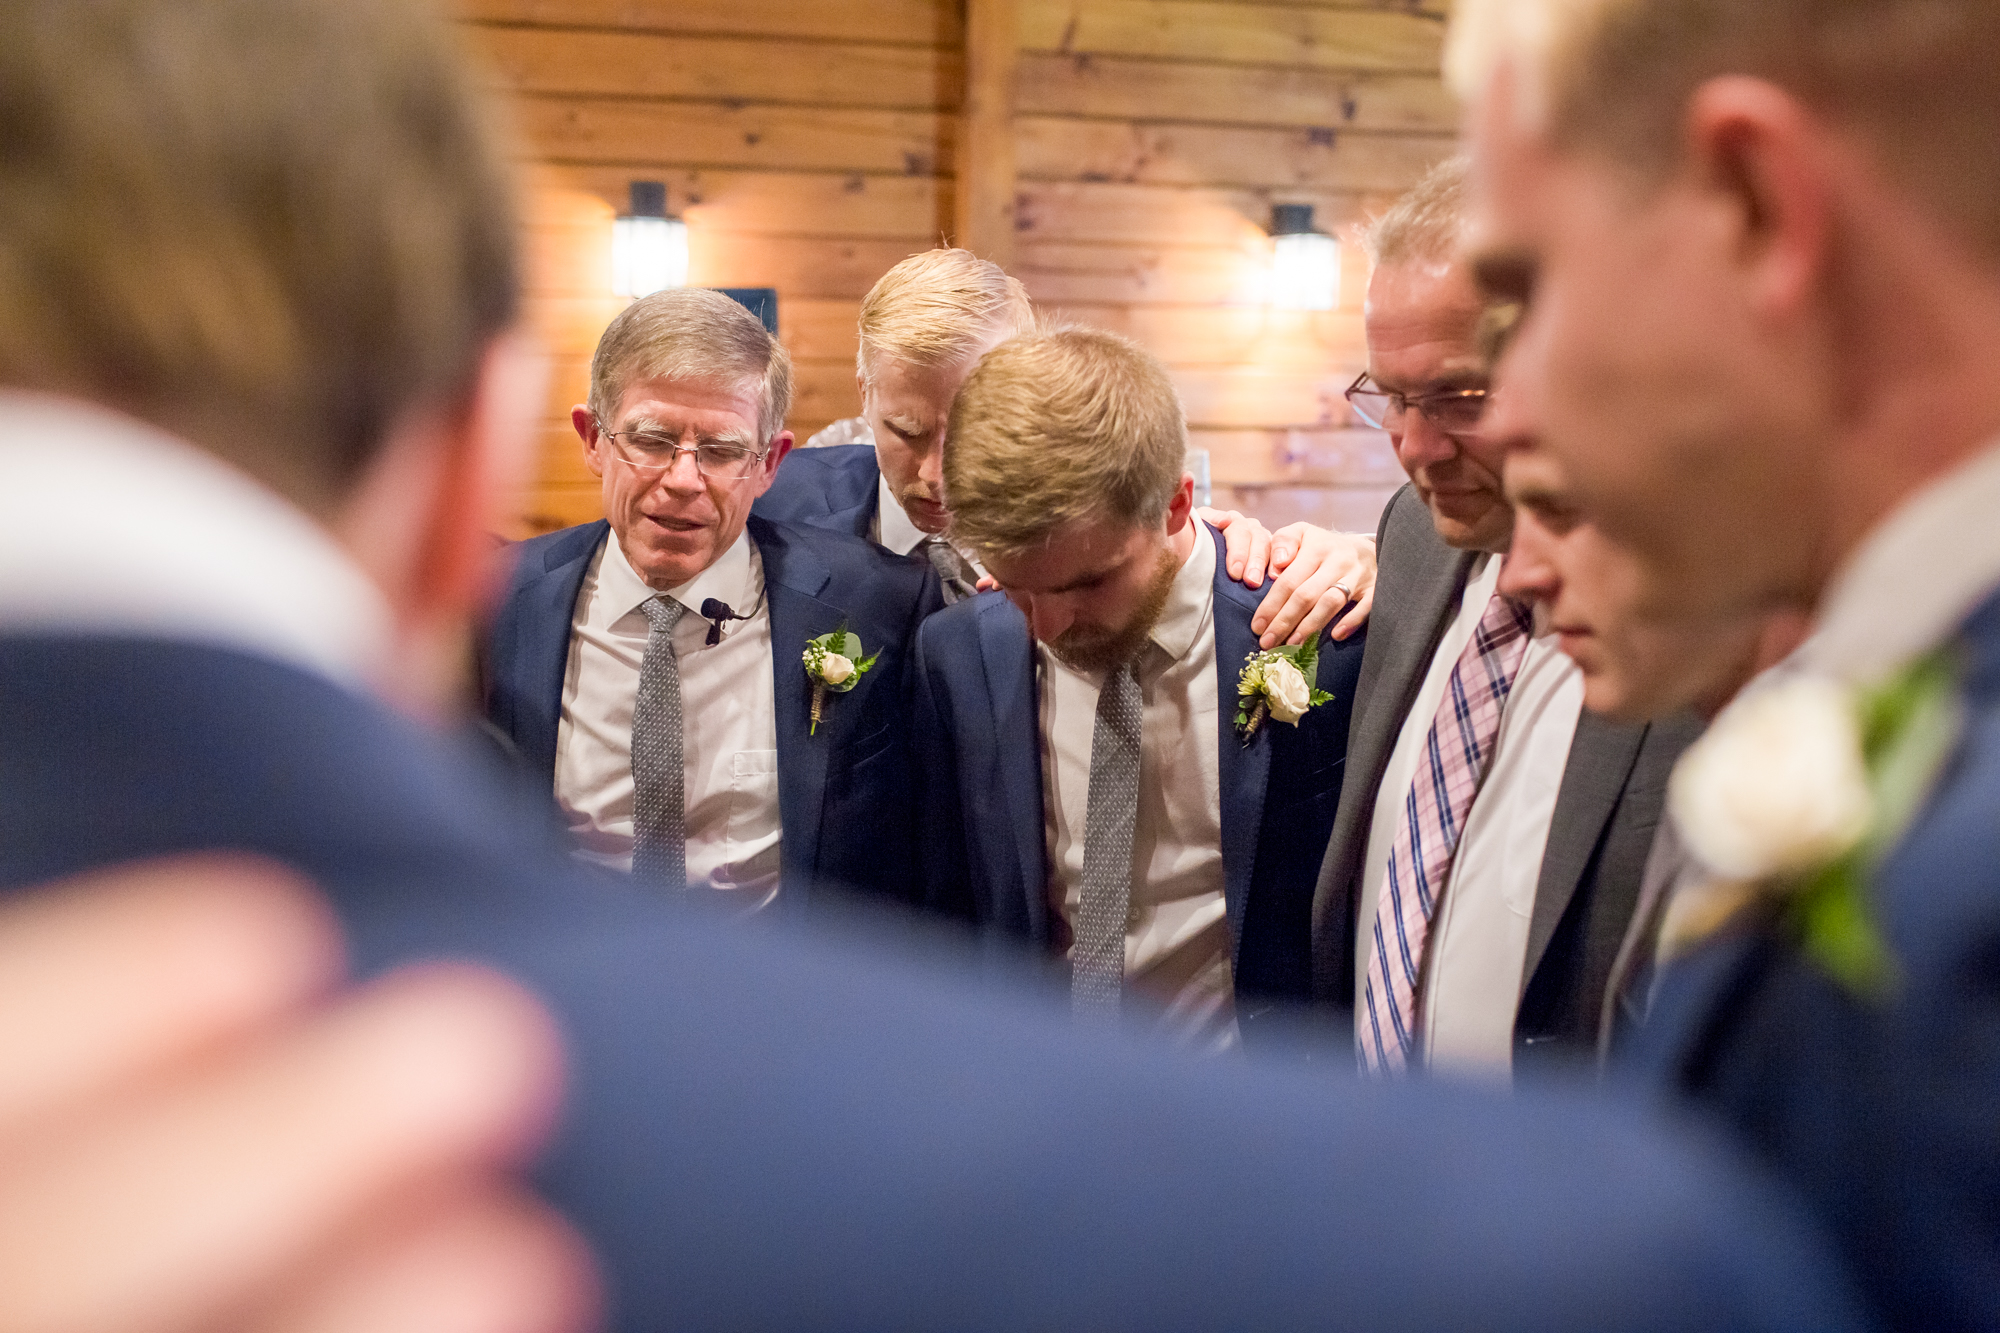 Wedding Prayer- Groomsmen